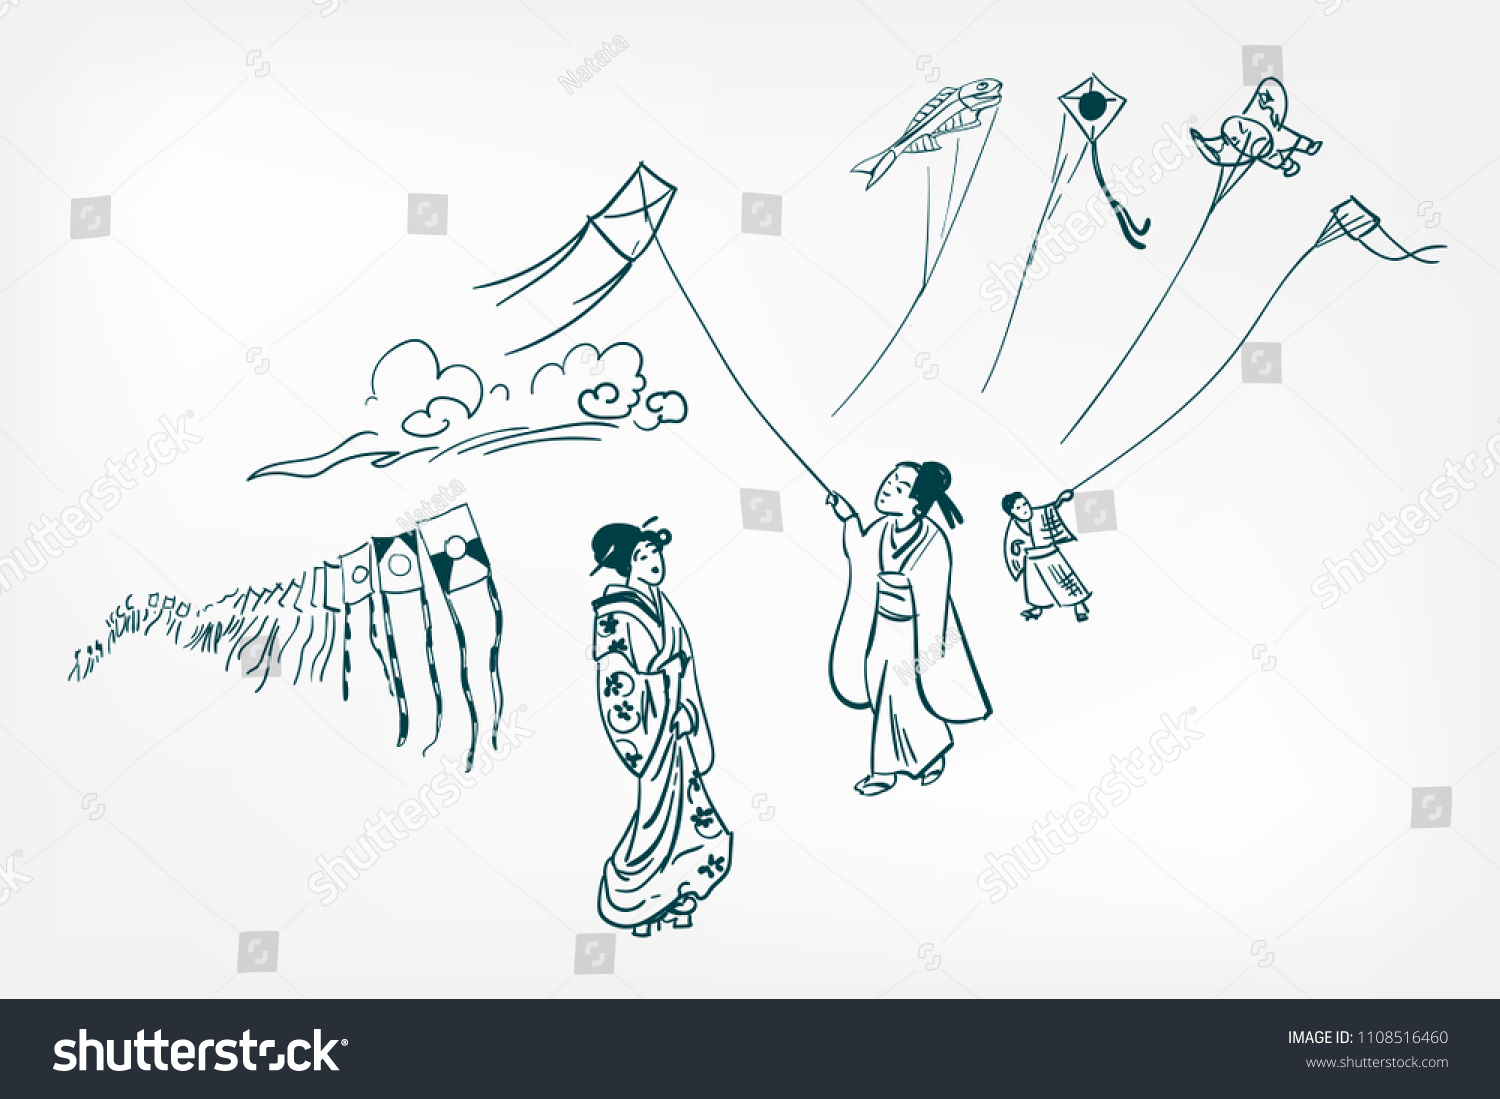 Kite Festival Japanese Traditional Sketch Vector Stock Chinese Template How To Make A Diagram For Illustration Ink Design Elements